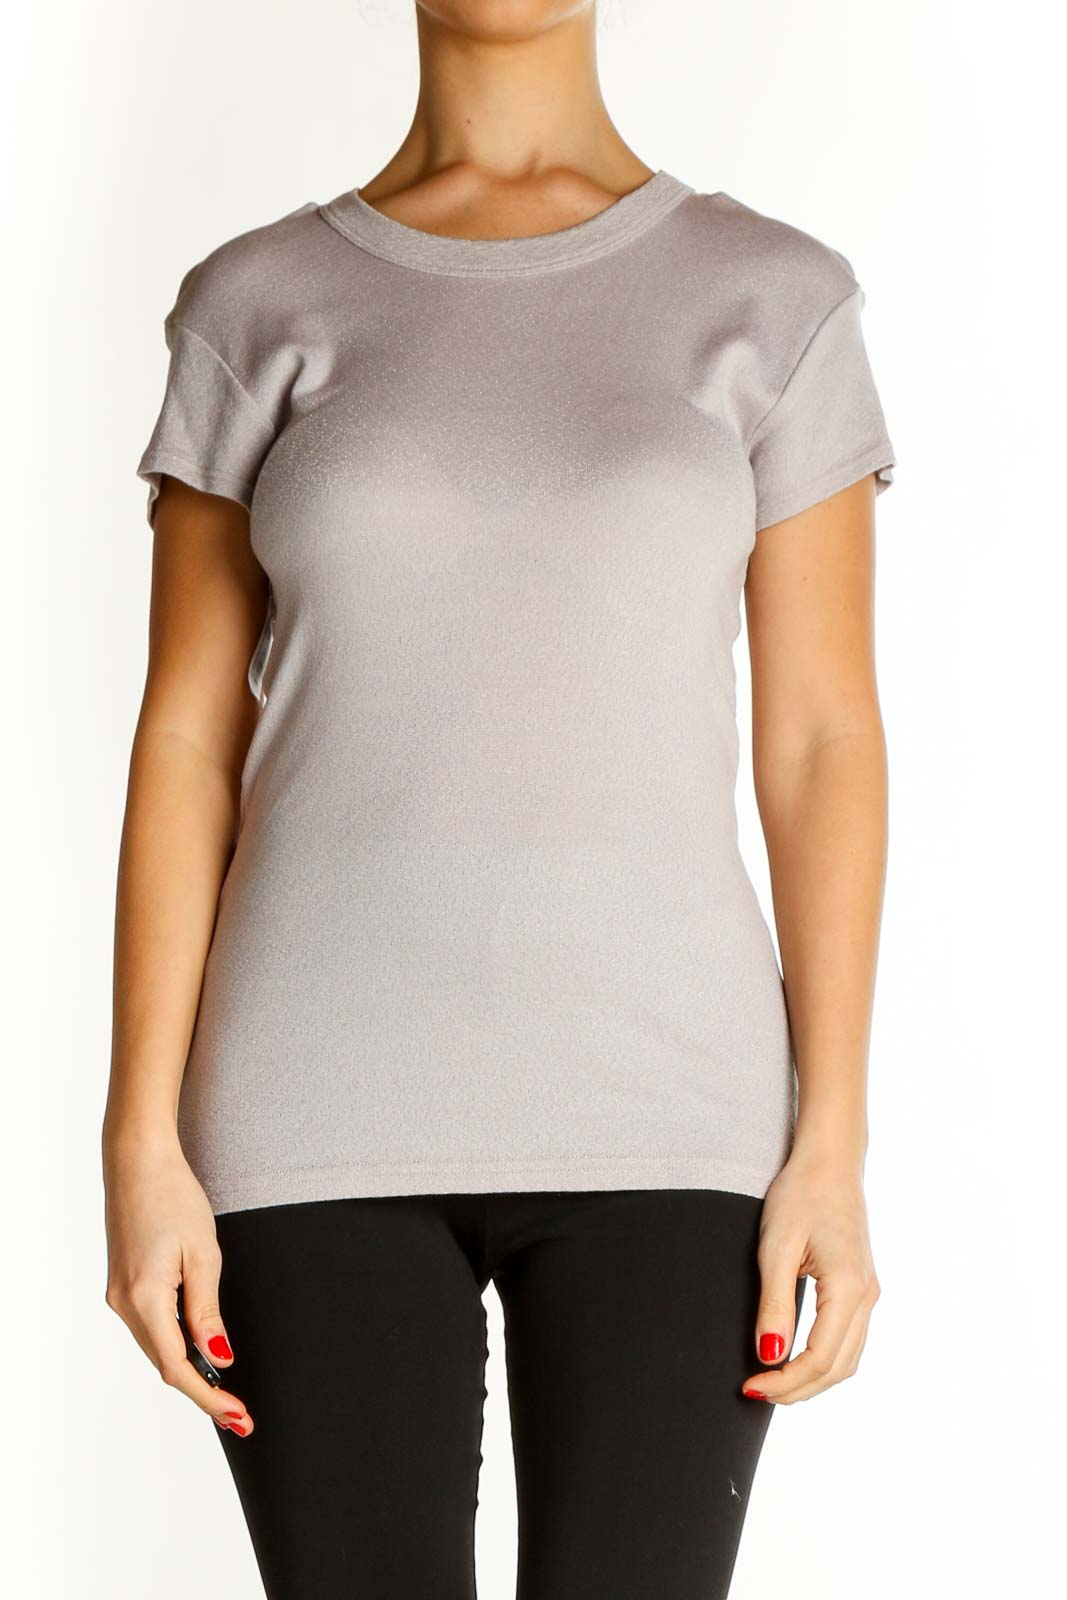 Beige Solid Casual T-Shirt Front